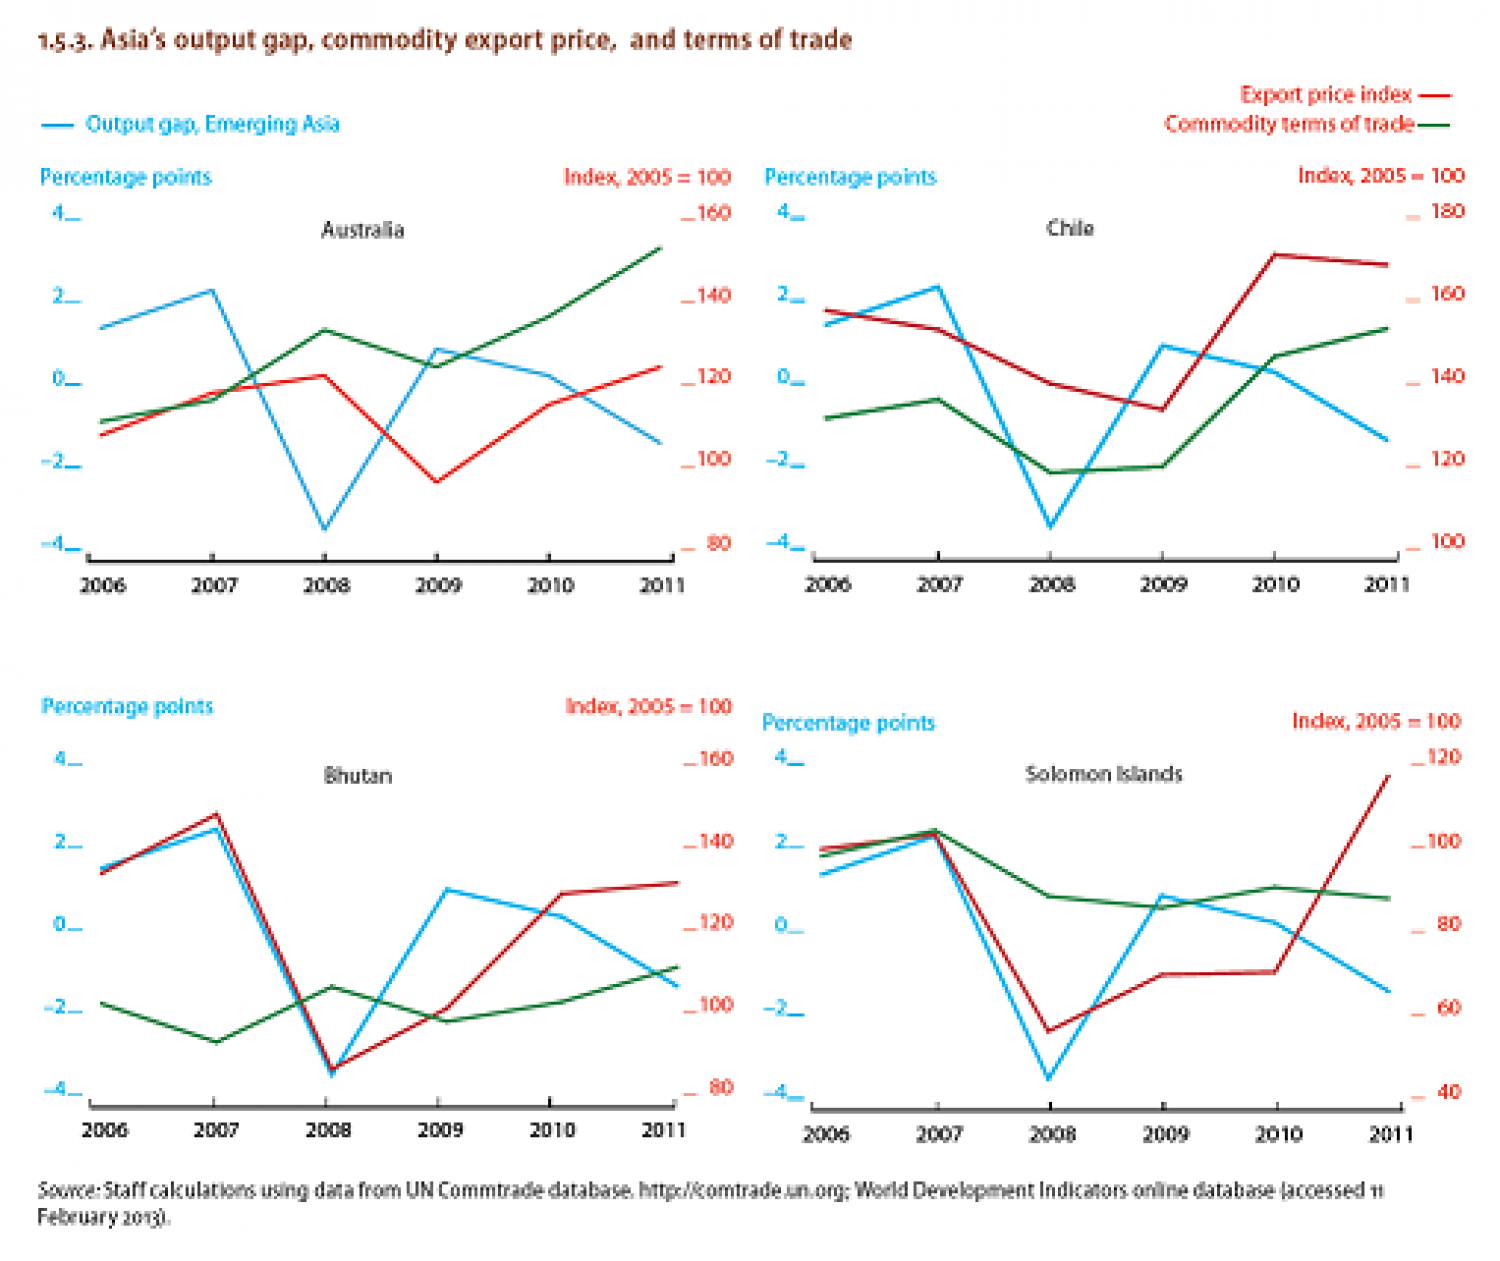 Asia's Output gap, commodity export price, and terms of trade. Infographic